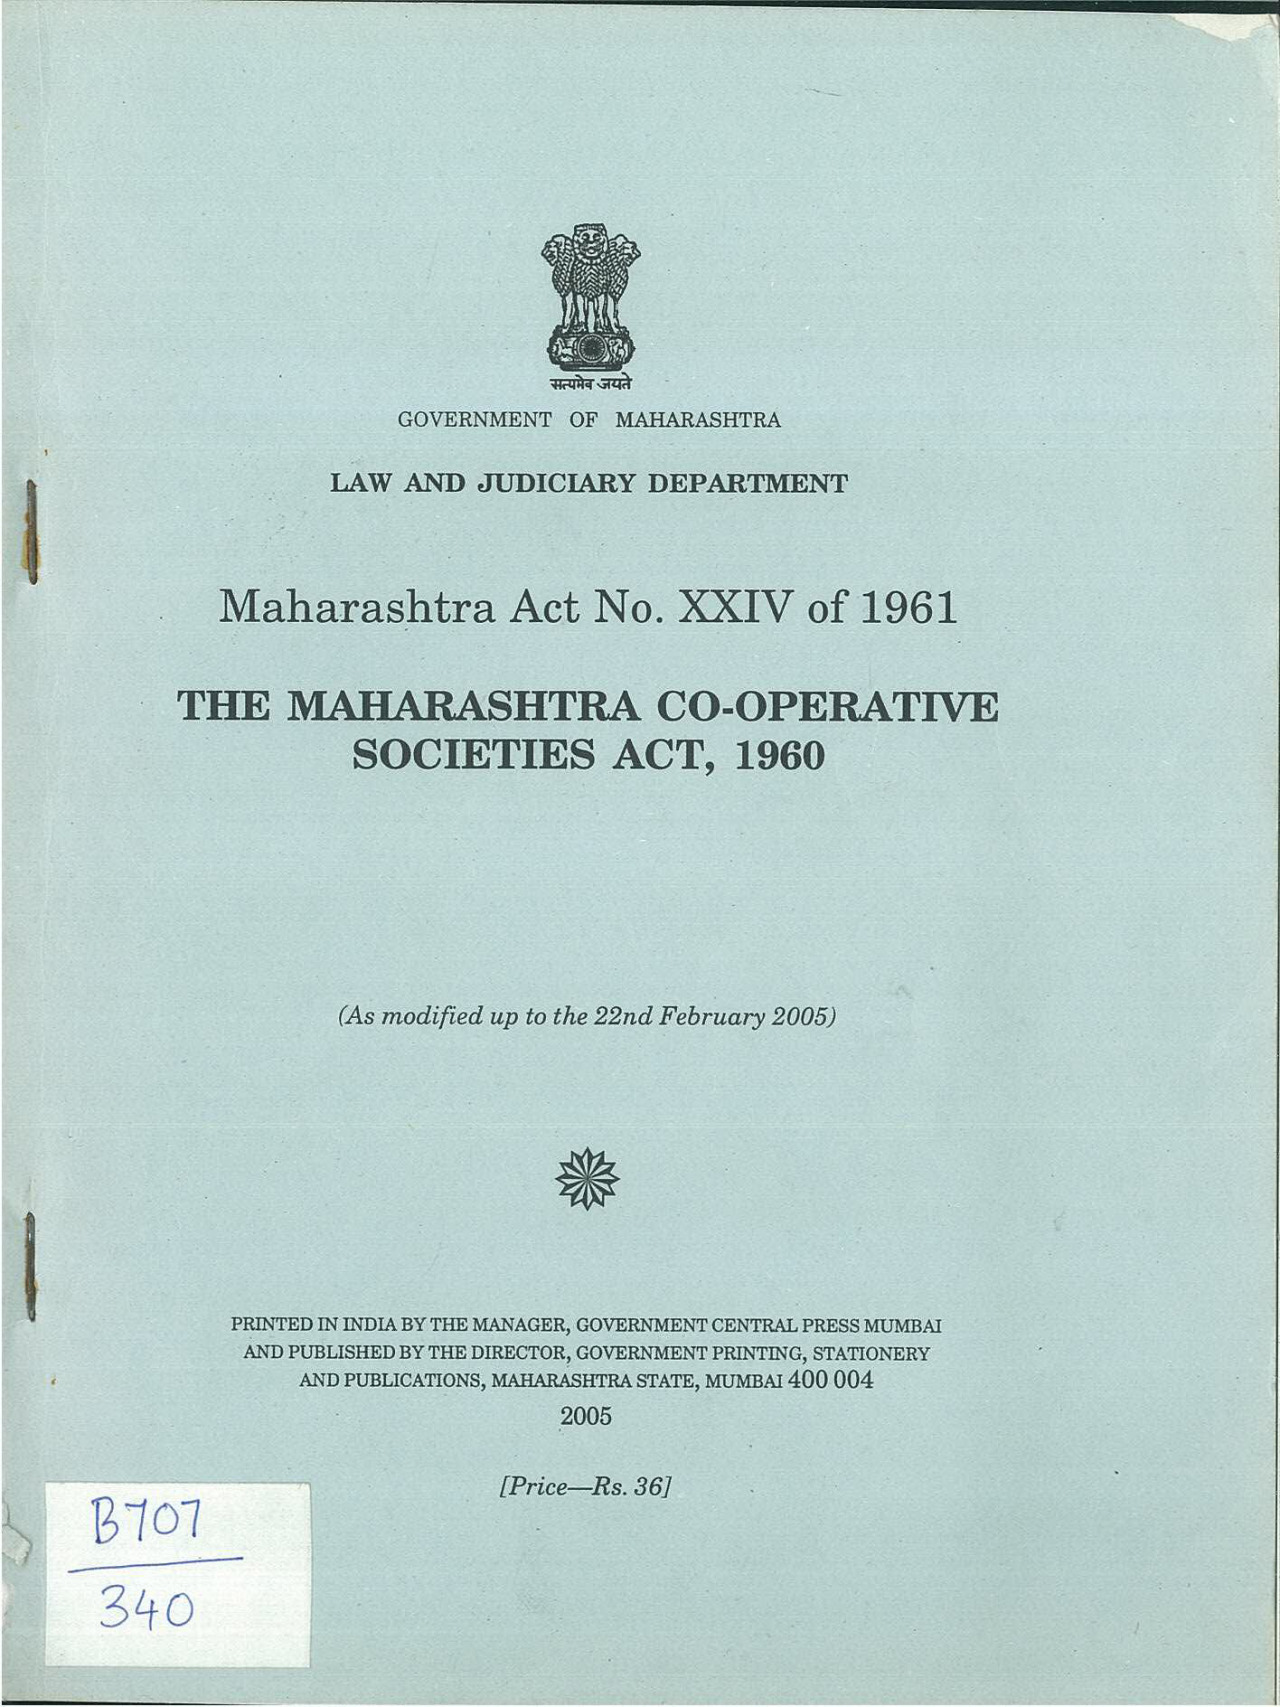 1960 the maharashtra co-operative societies act